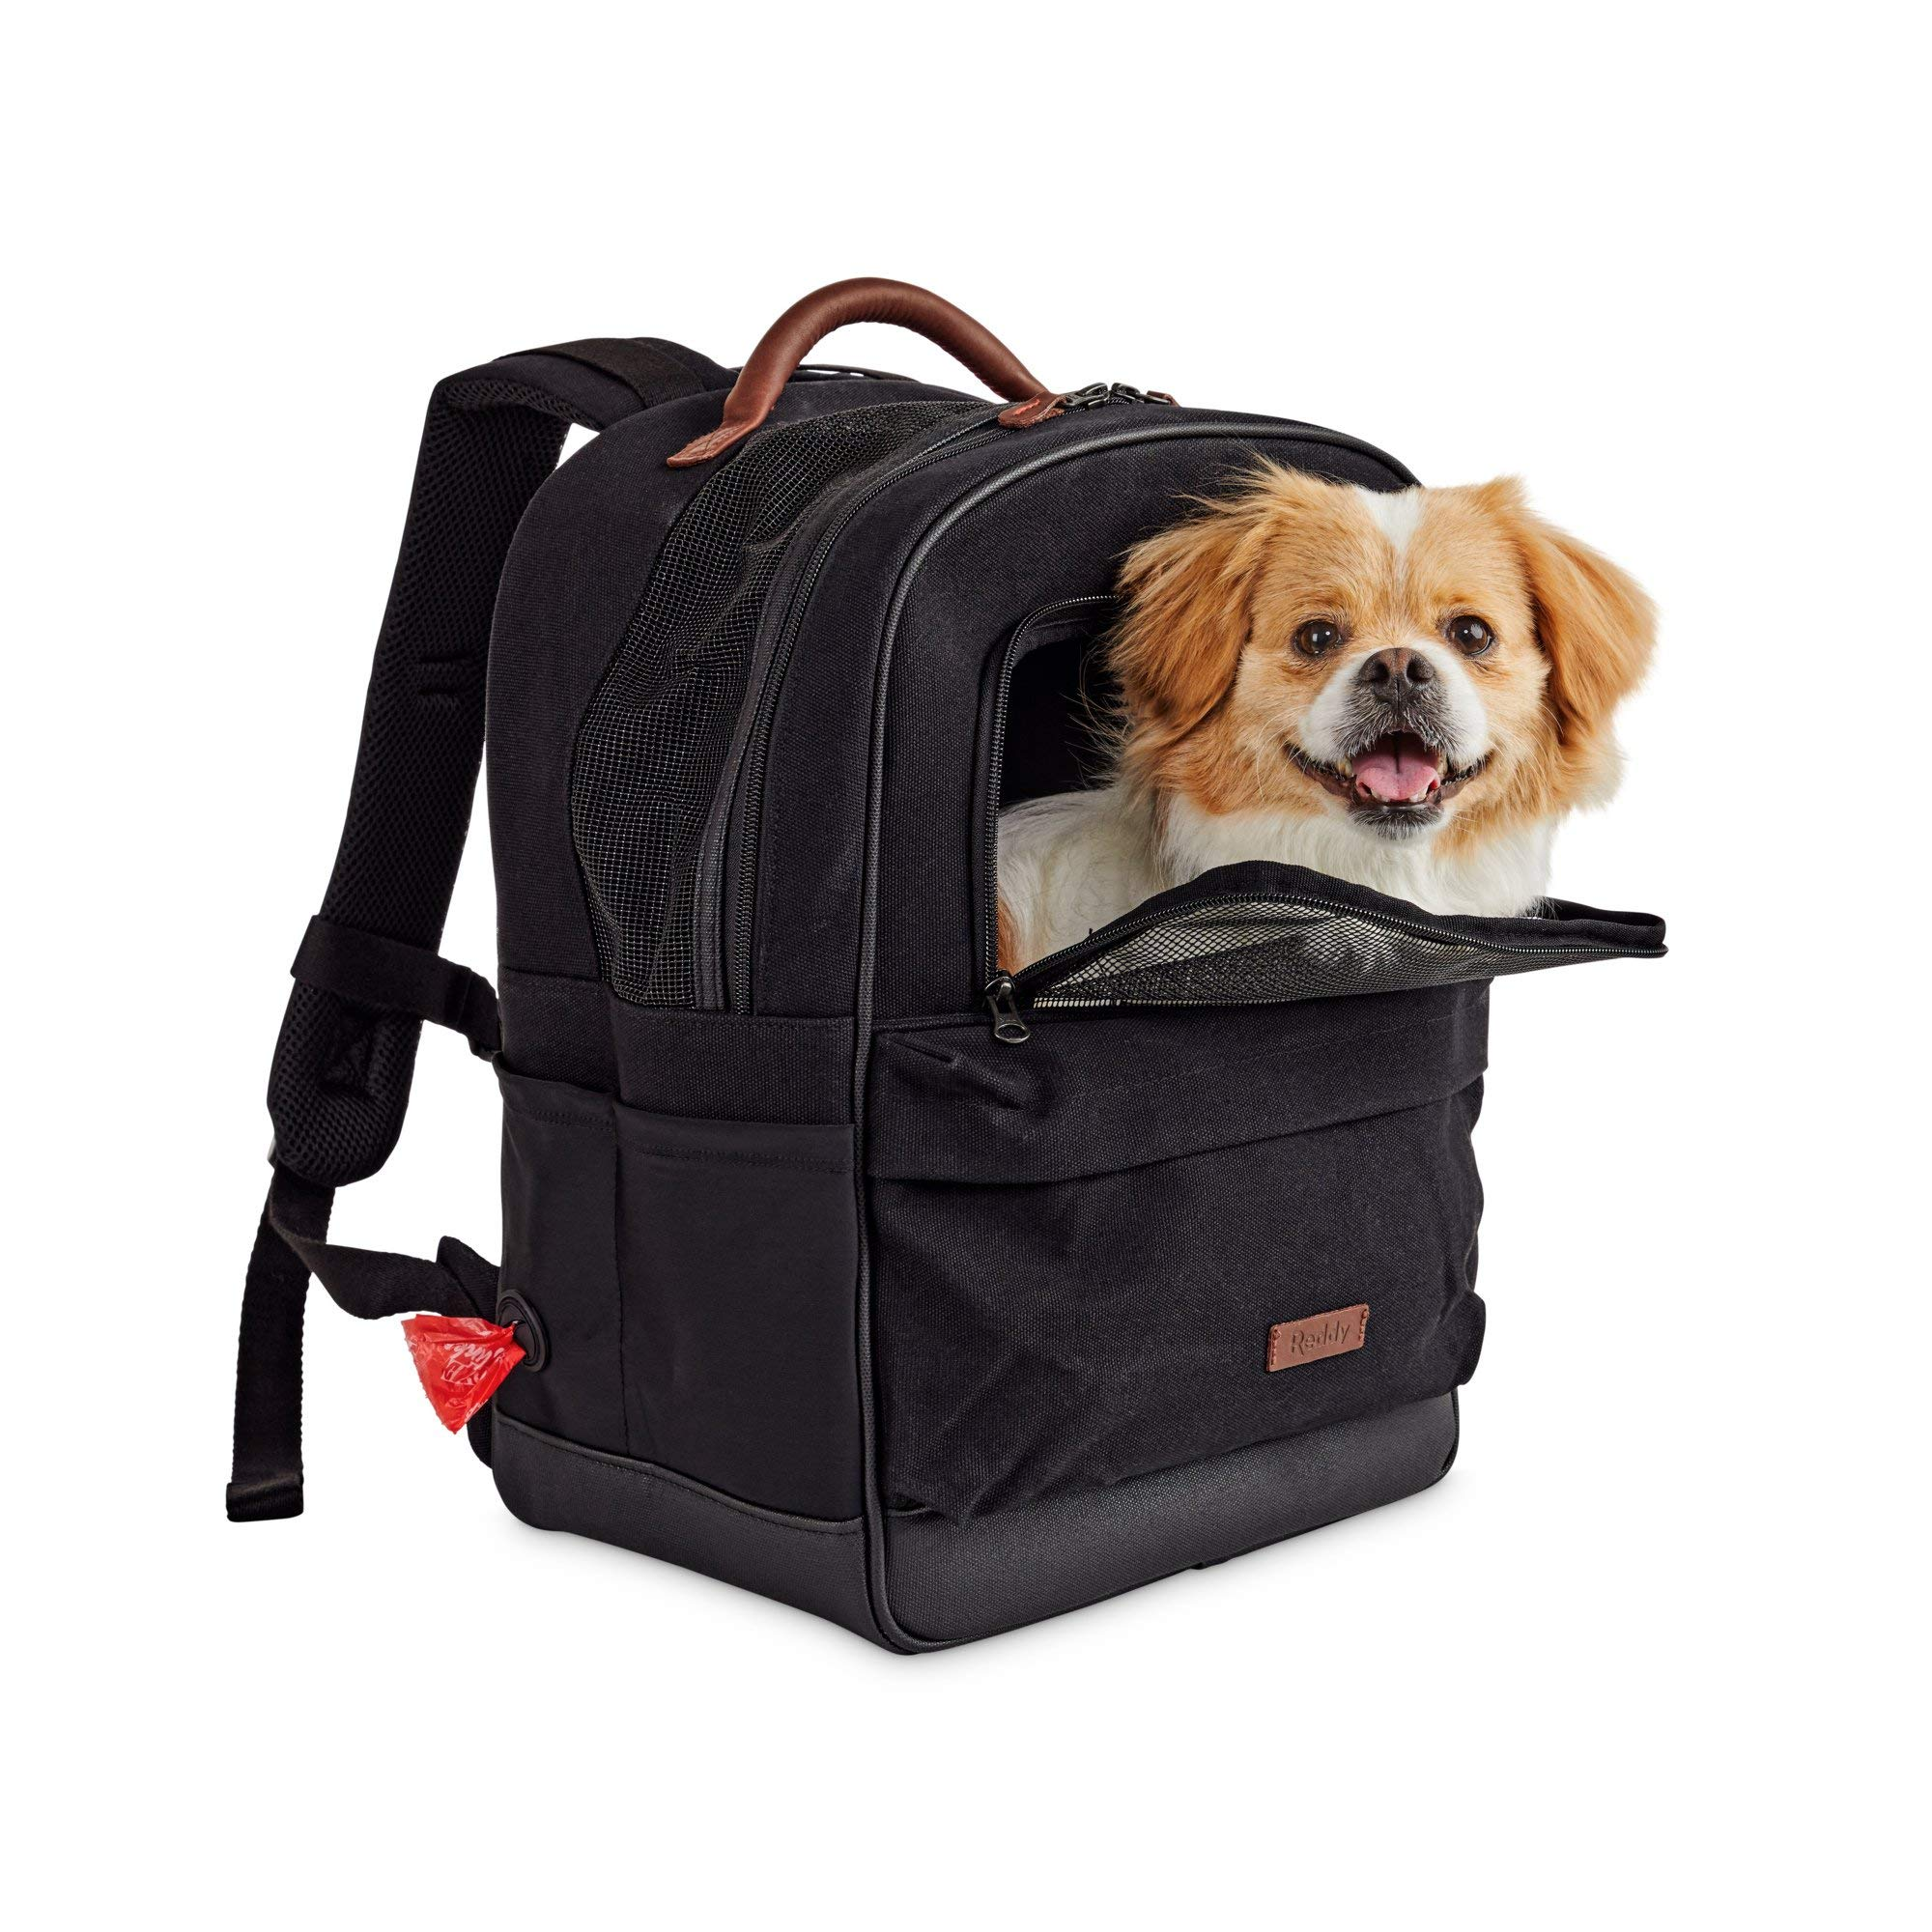 Reddy Black Cotton Canvas Pet Carrier Backpack, 16'' H x 13'' W x 8'' D, Small